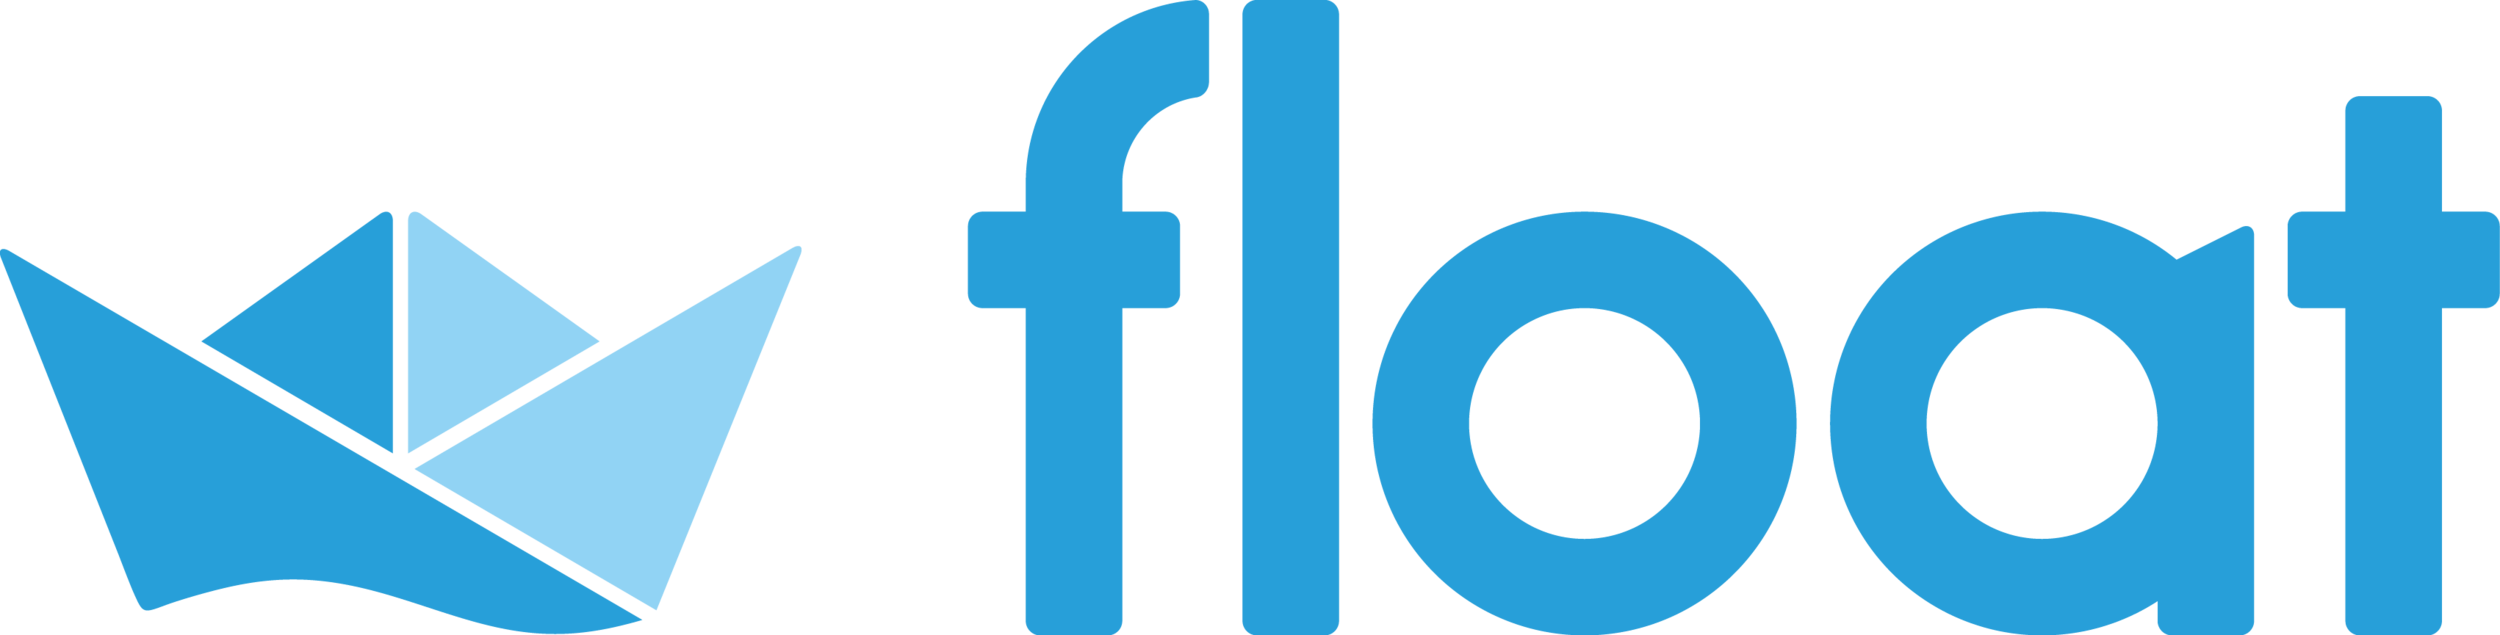 float-logo-blue.png